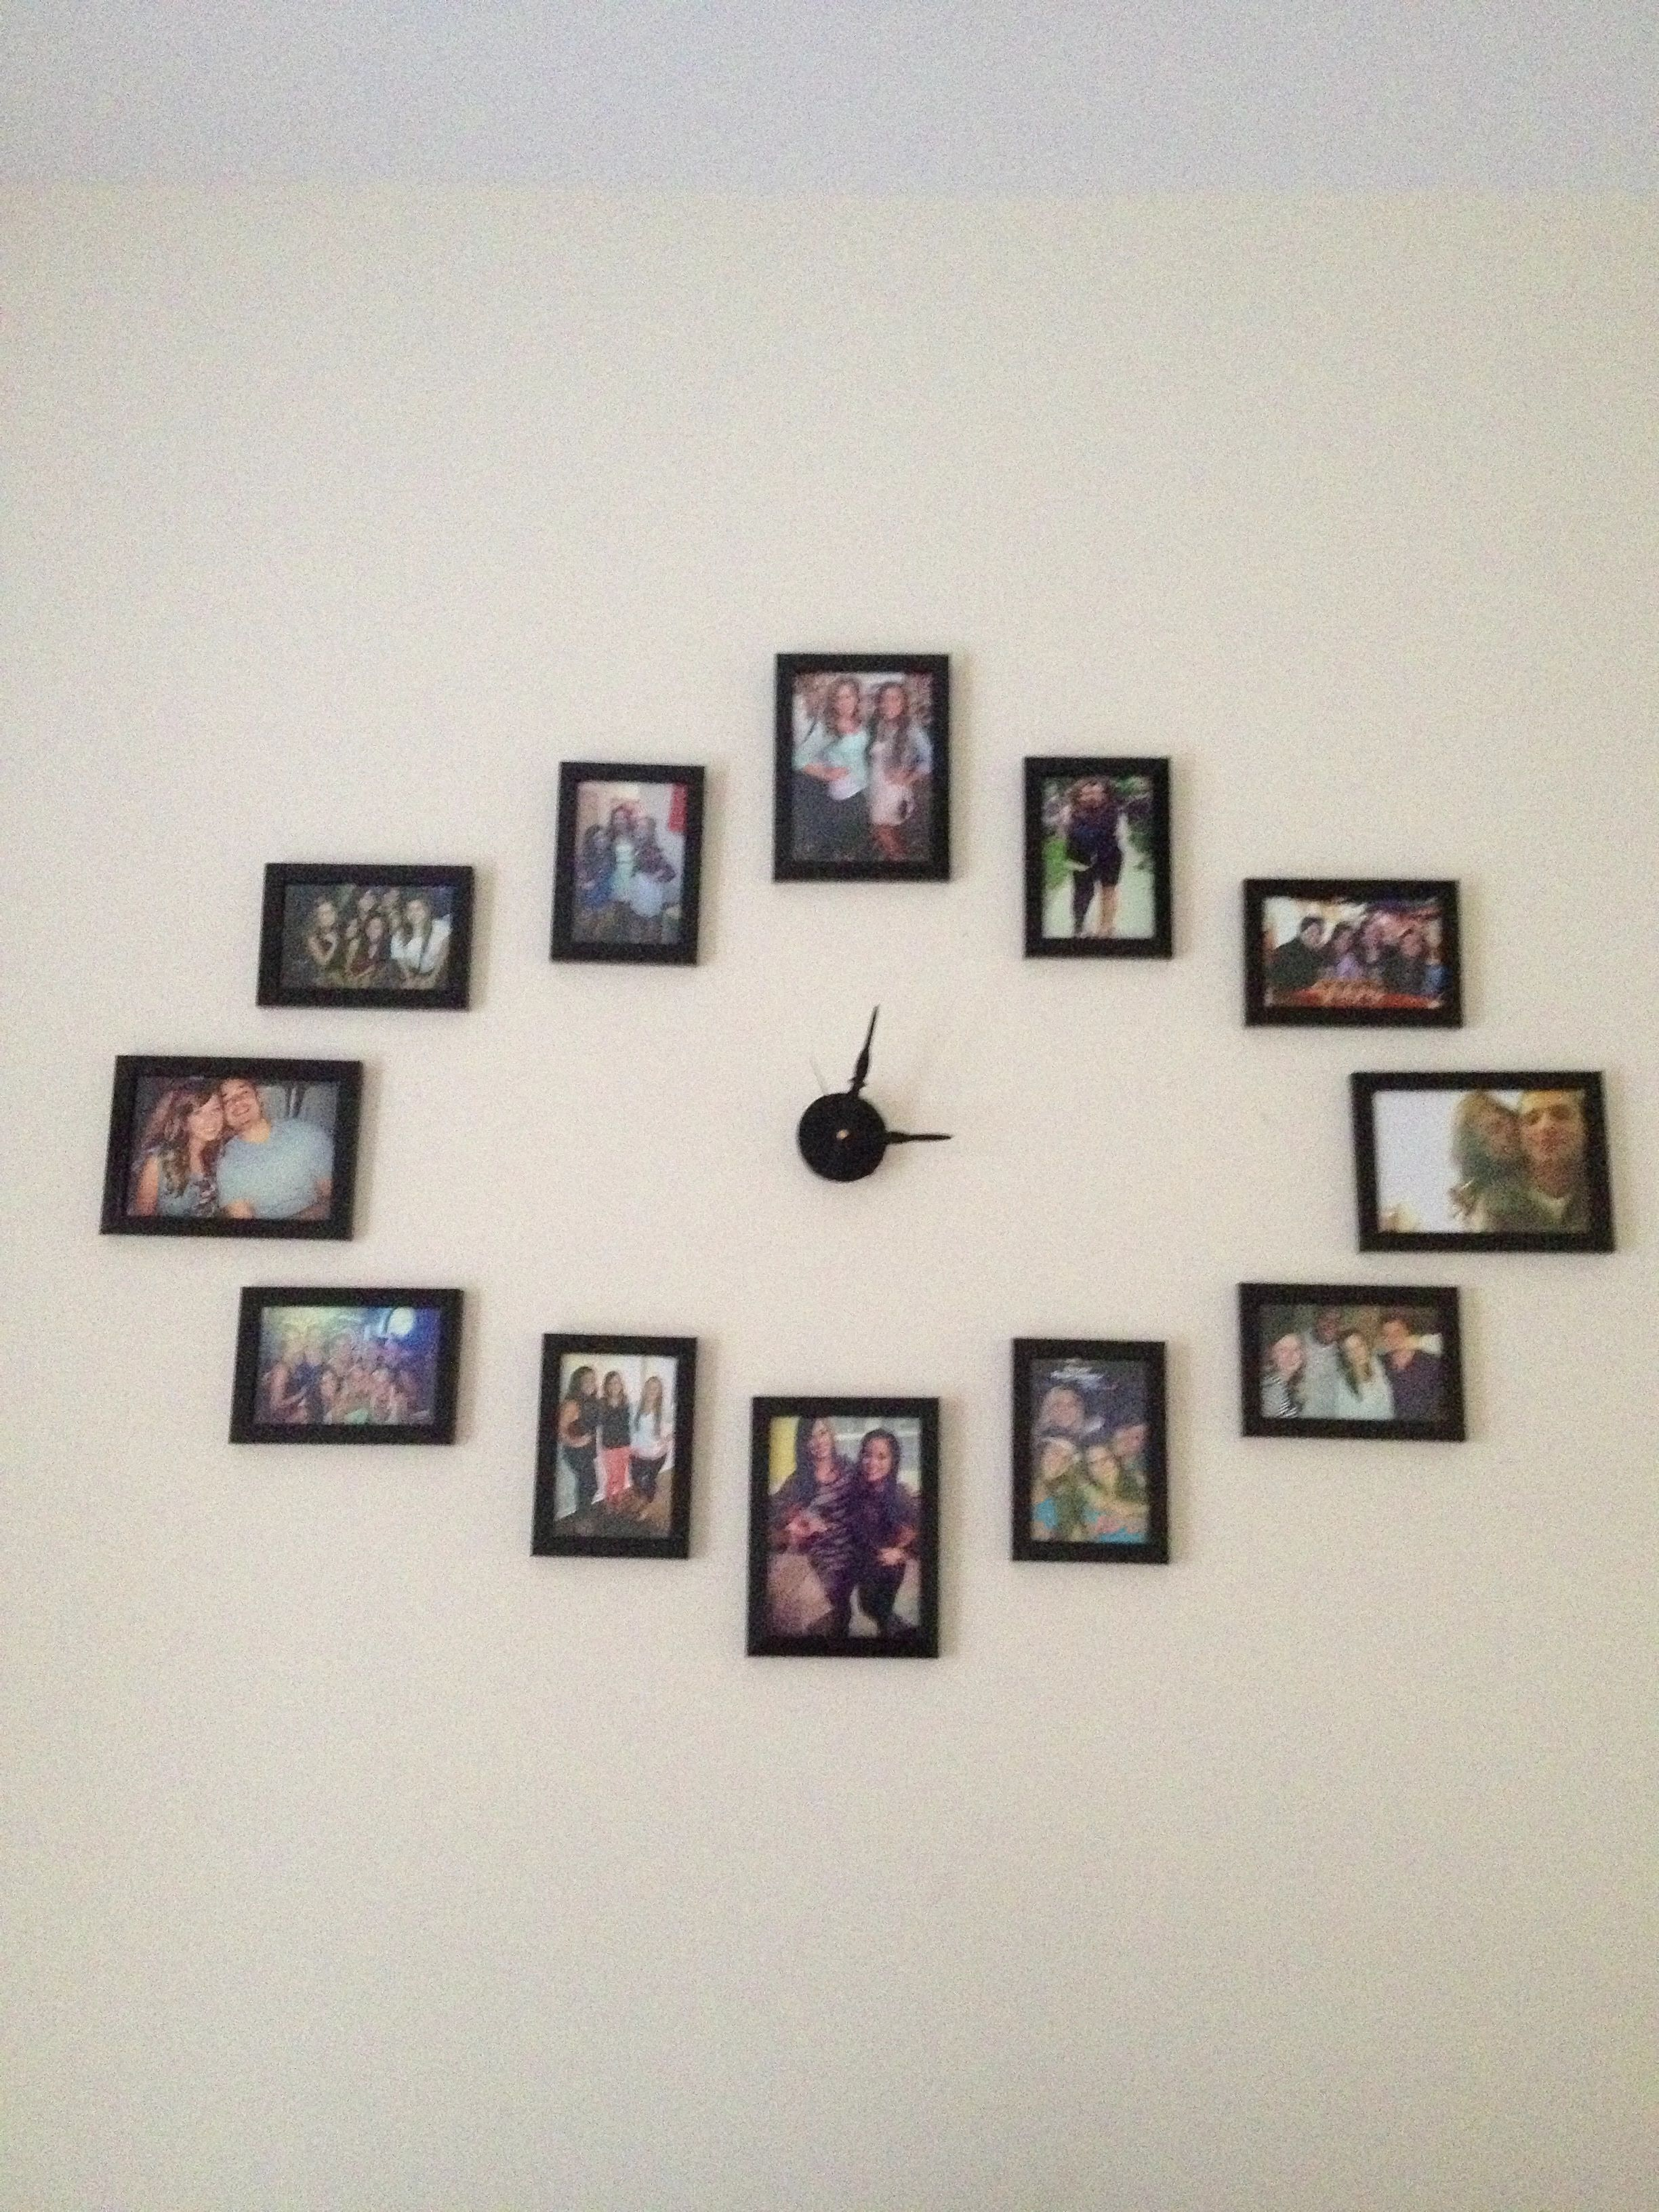 Our Diy Wall Clock Made With 4x6 Picture Frames And 5x7s For 12 00 3 00 6 00 And 9 00 Found The Clock Hands At Michaels Go Decor Home Diy Diy Clock Wall